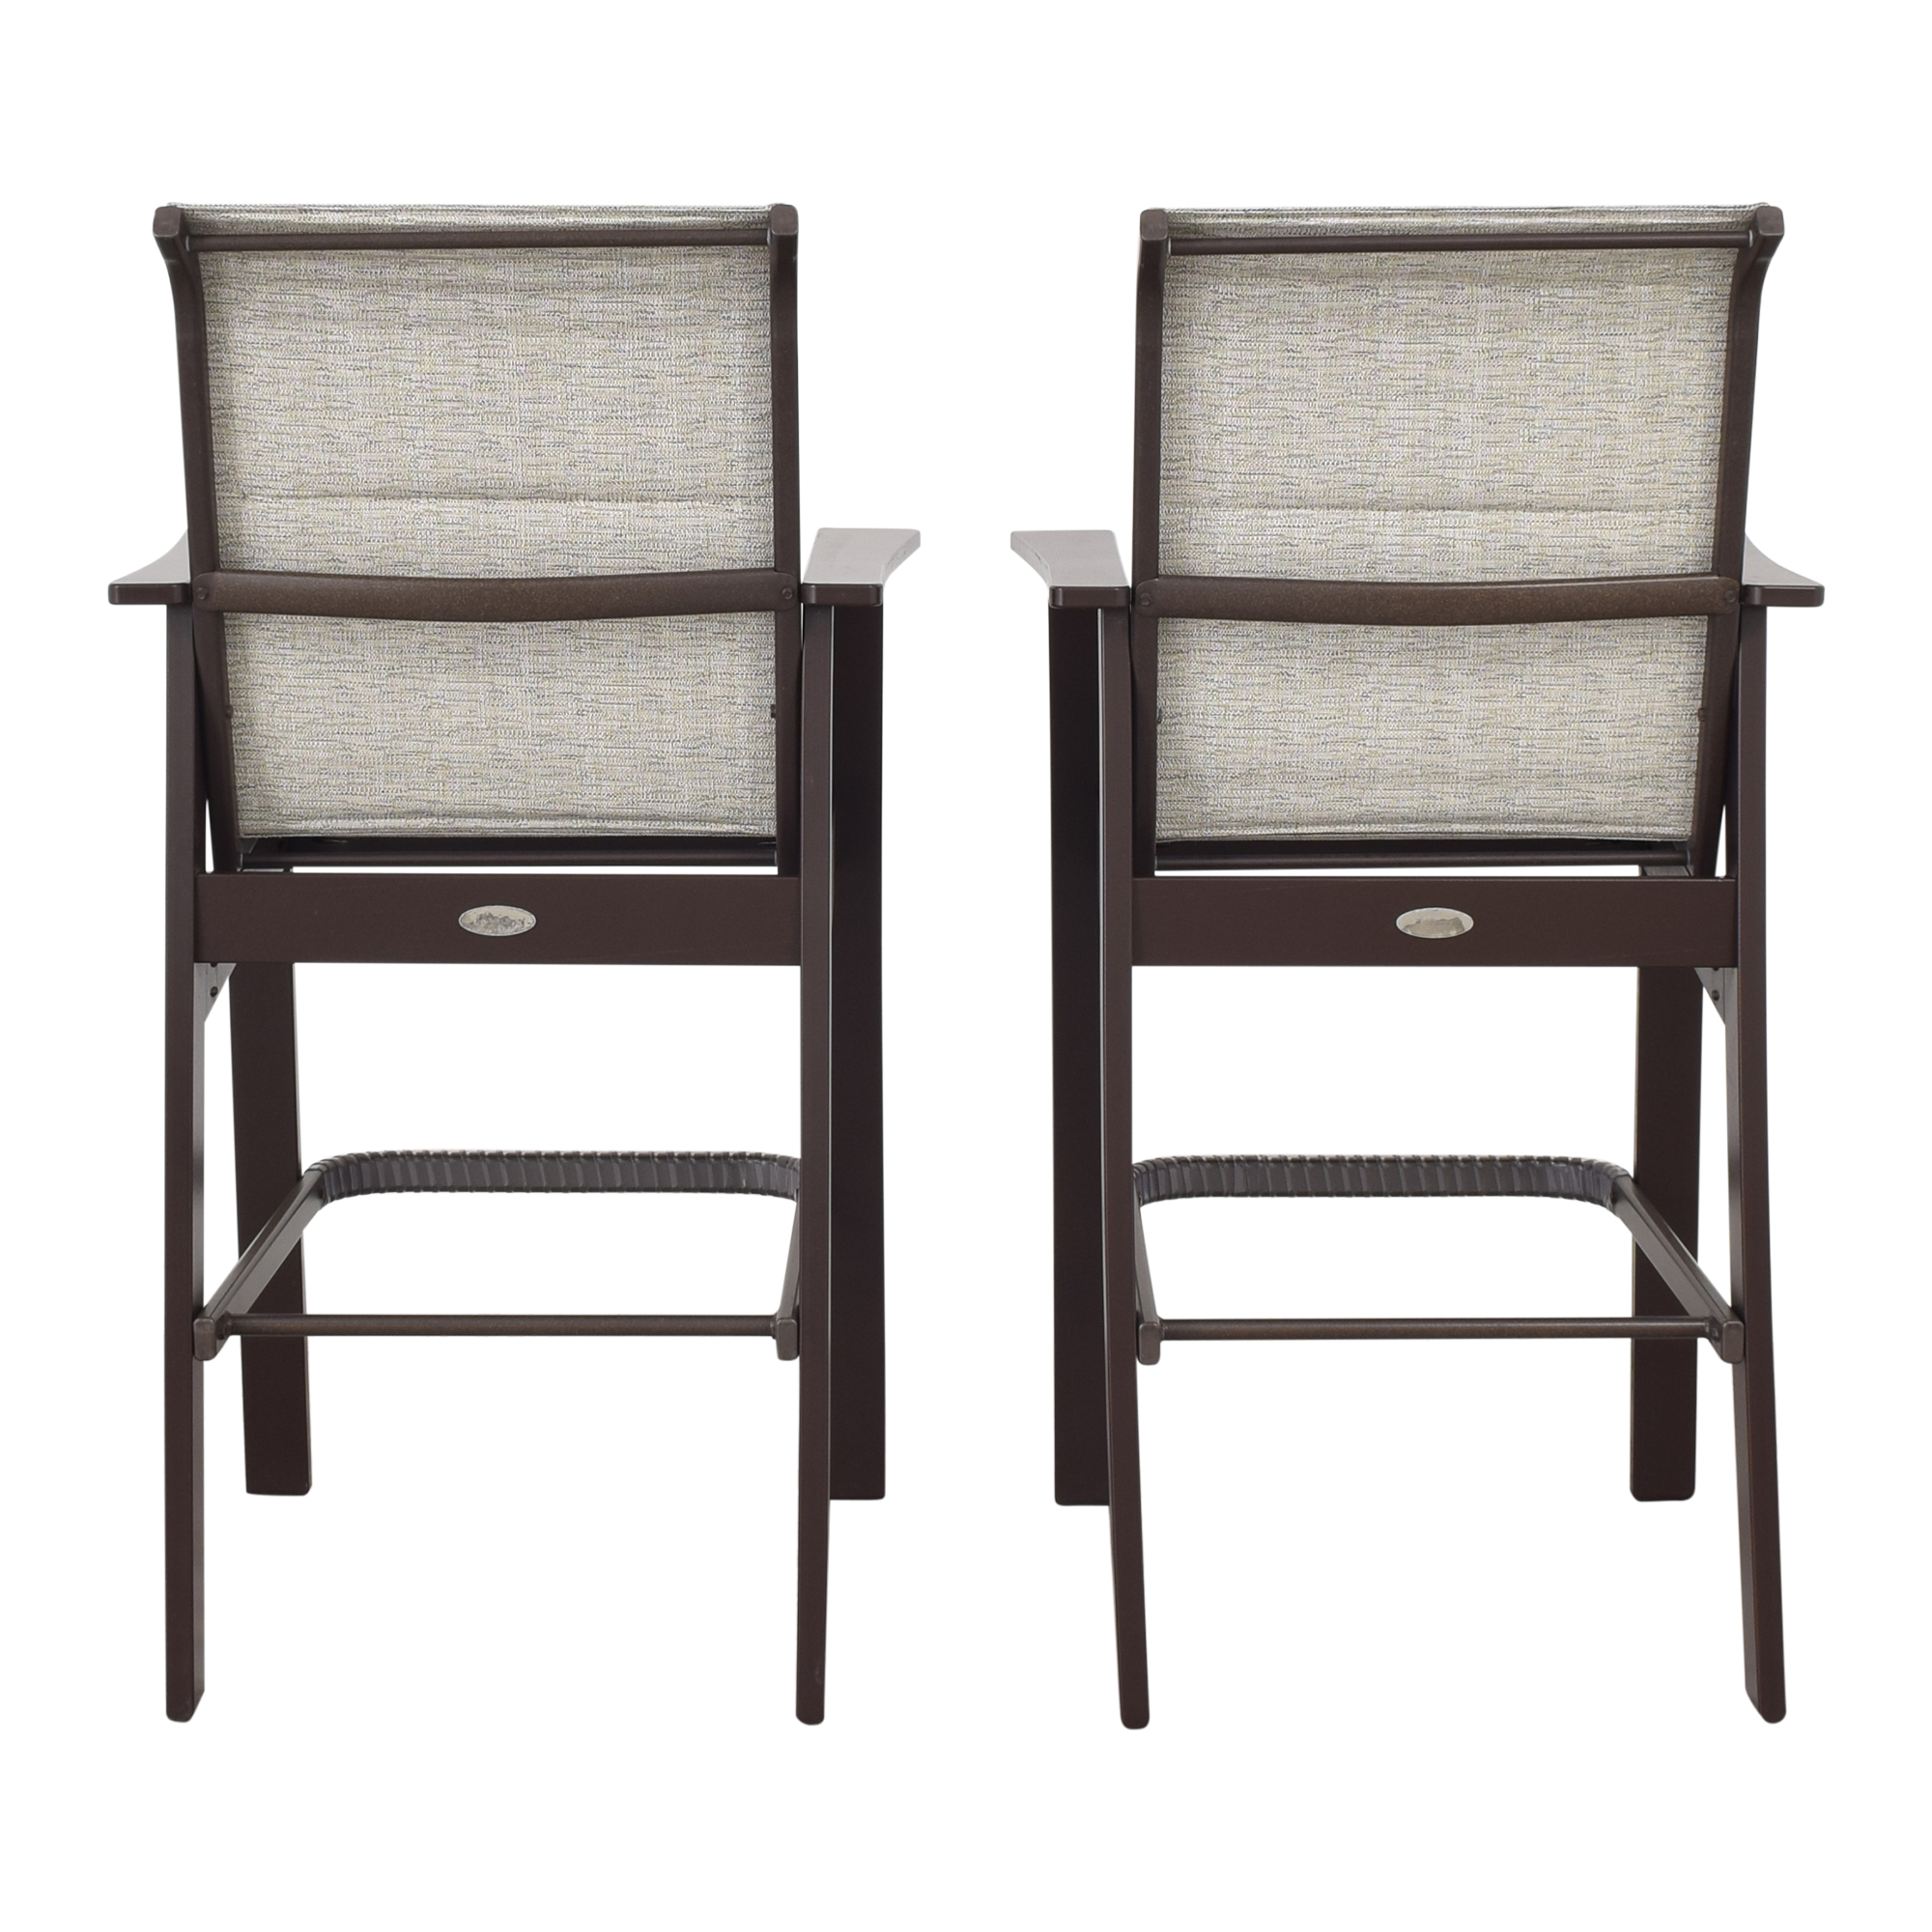 Windward Design Group Windward Design Group High Dining Chairs pa